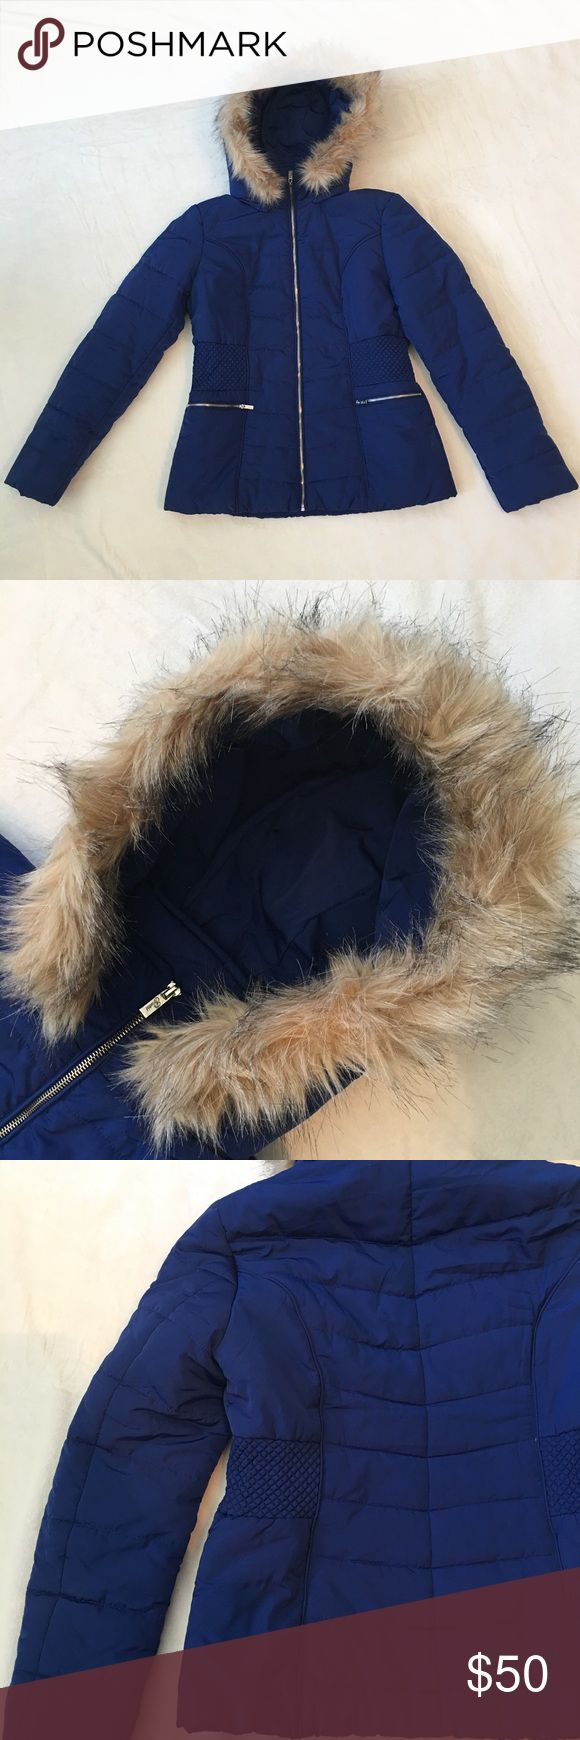 """🎉Clearance🎉 Guess Women's Puffer Coat NWT Gorgeous brand new coat with removable faux fur hood. Two zip pockets. 100% polyester. Bust is 21.5"""" armpit to hem is 16.5"""". T2 Guess Jackets & Coats Puffers"""